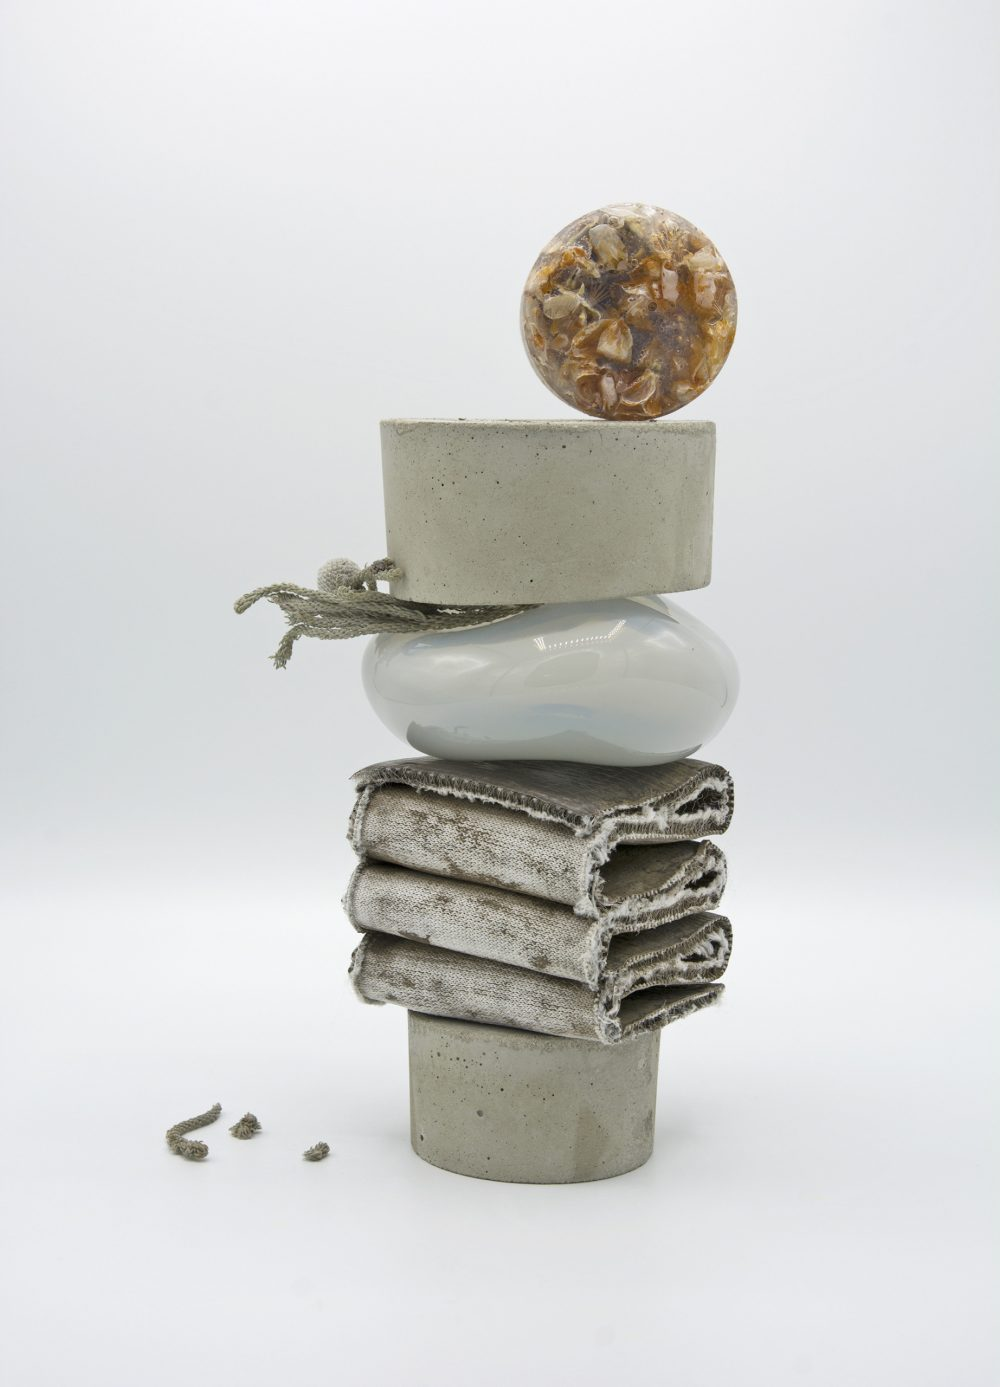 Kelly O'Brien. On a white background, a tall stack of forms including two concrete discs, a strip of hessian/clay material folded into a ripple, a glass-like smooth pearlescent form, and a disc balanced on the top of the stack which looks like shells and other mixed matter set into a resin disc.